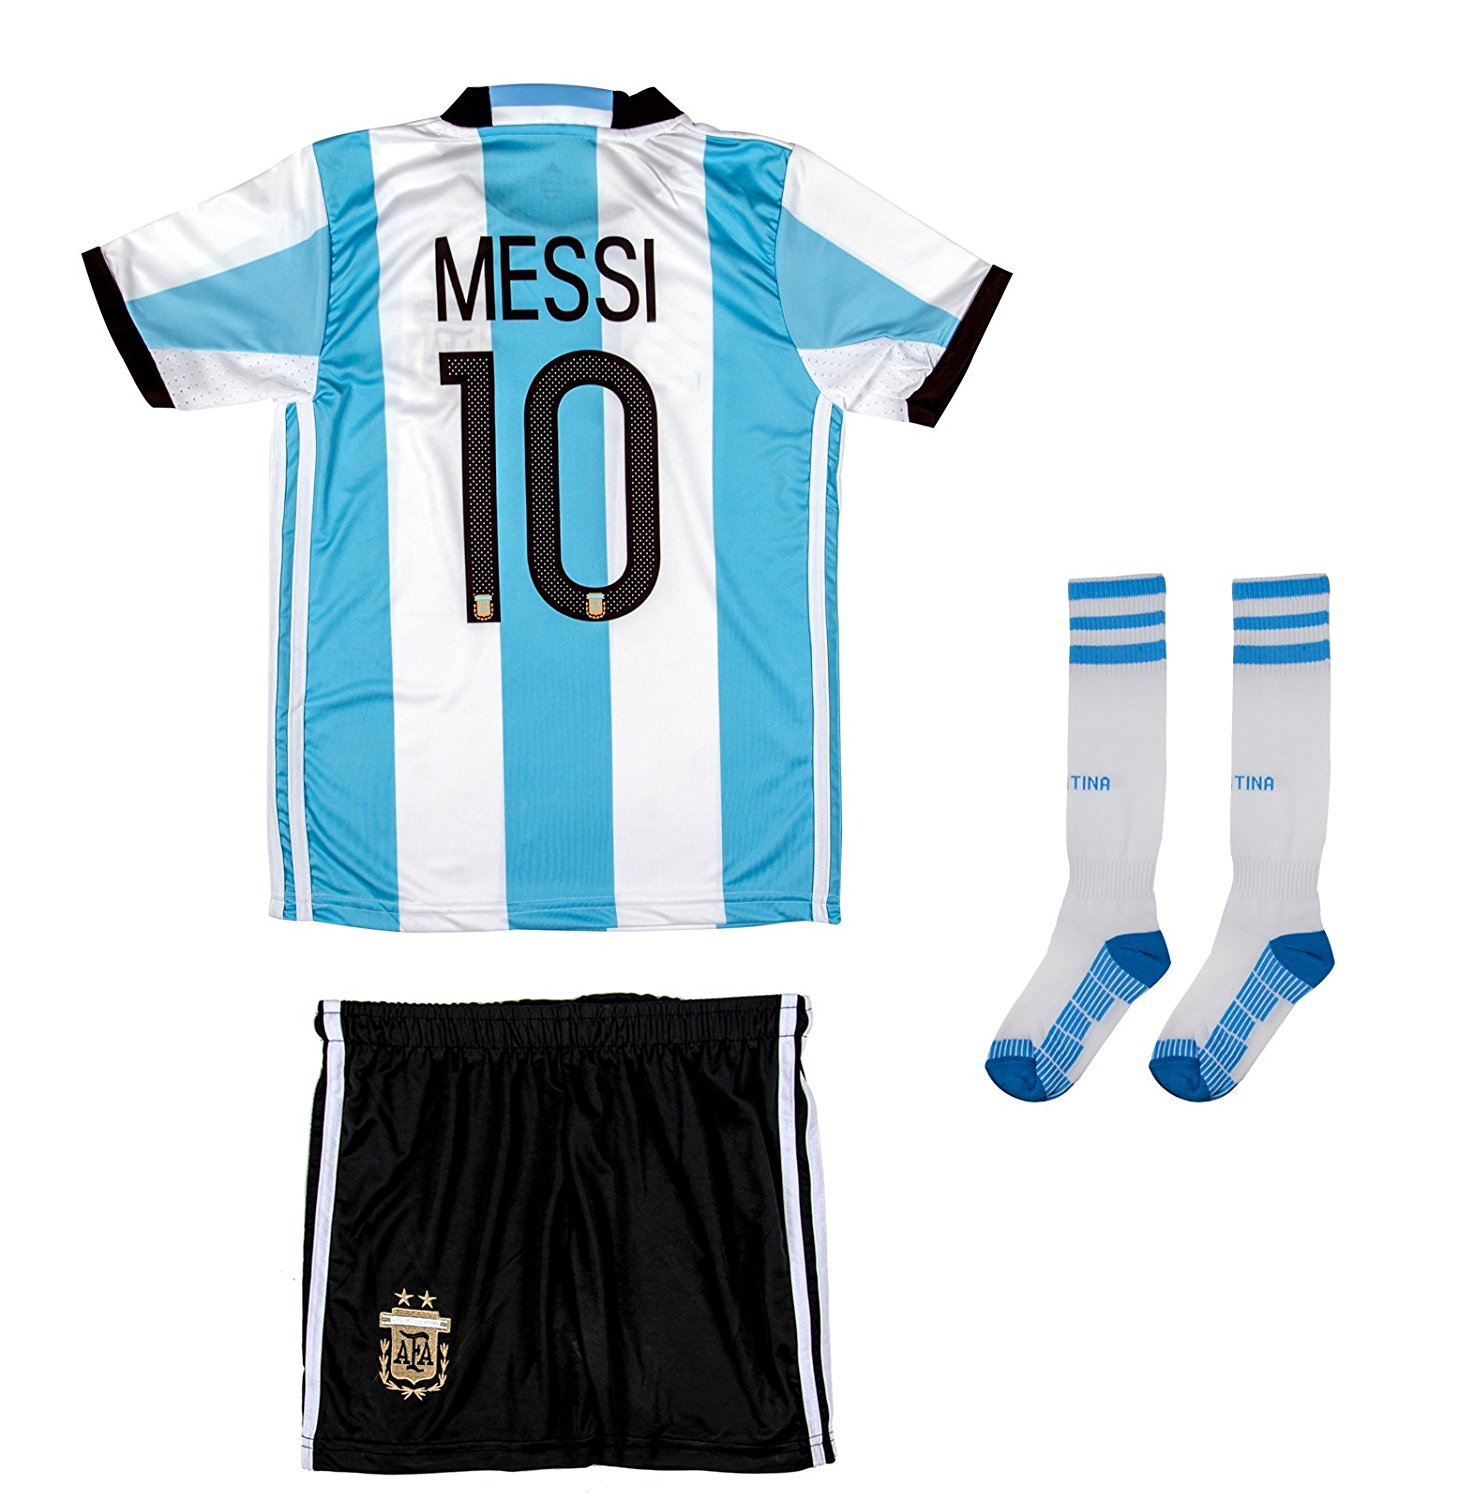 c6dd4728f Get Quotations · AMDS Soccer Youth Jersey Set ○ Argentina ○ Home Jersey  With Long Socks ○ EURO 2016